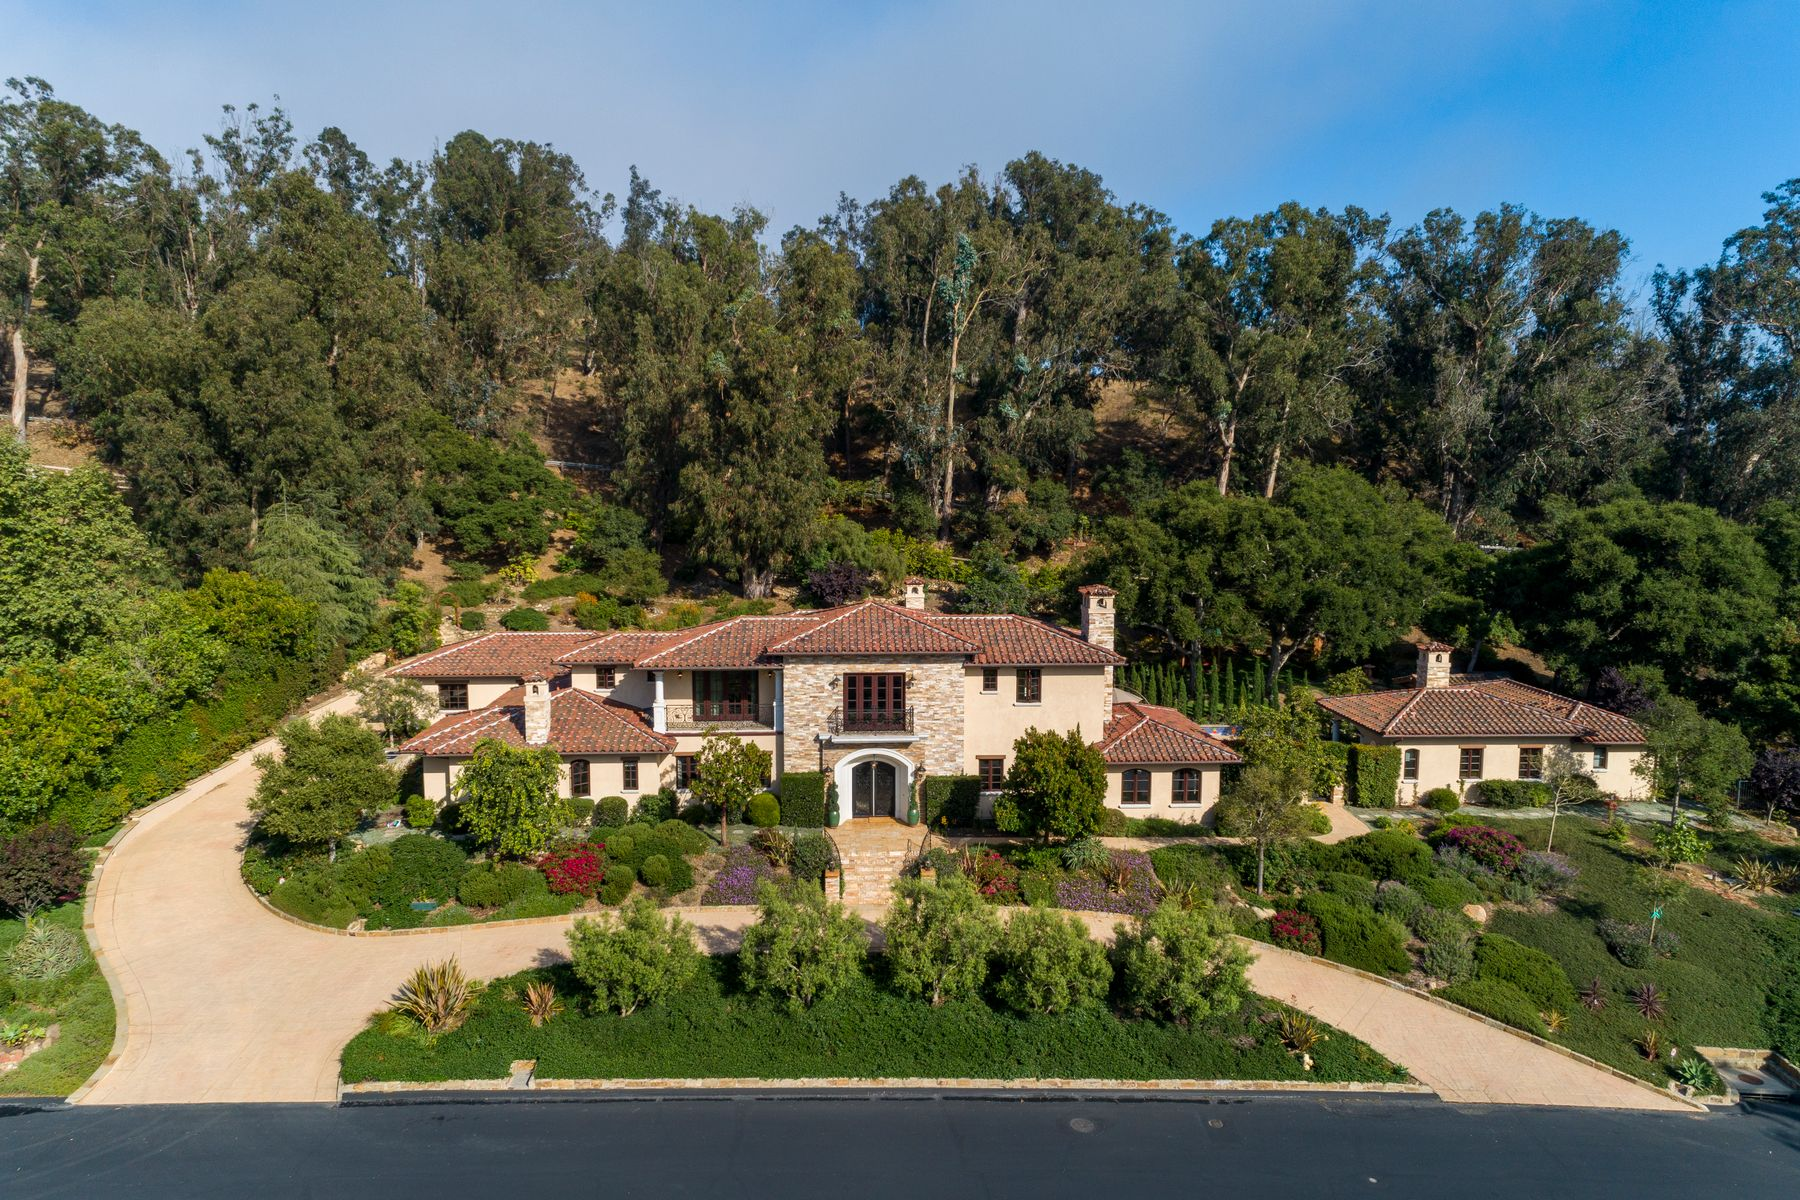 Single Family Homes for Sale at Mediterranean-Style Home in Montecito 2020 Creekside Road Montecito, California 93108 United States